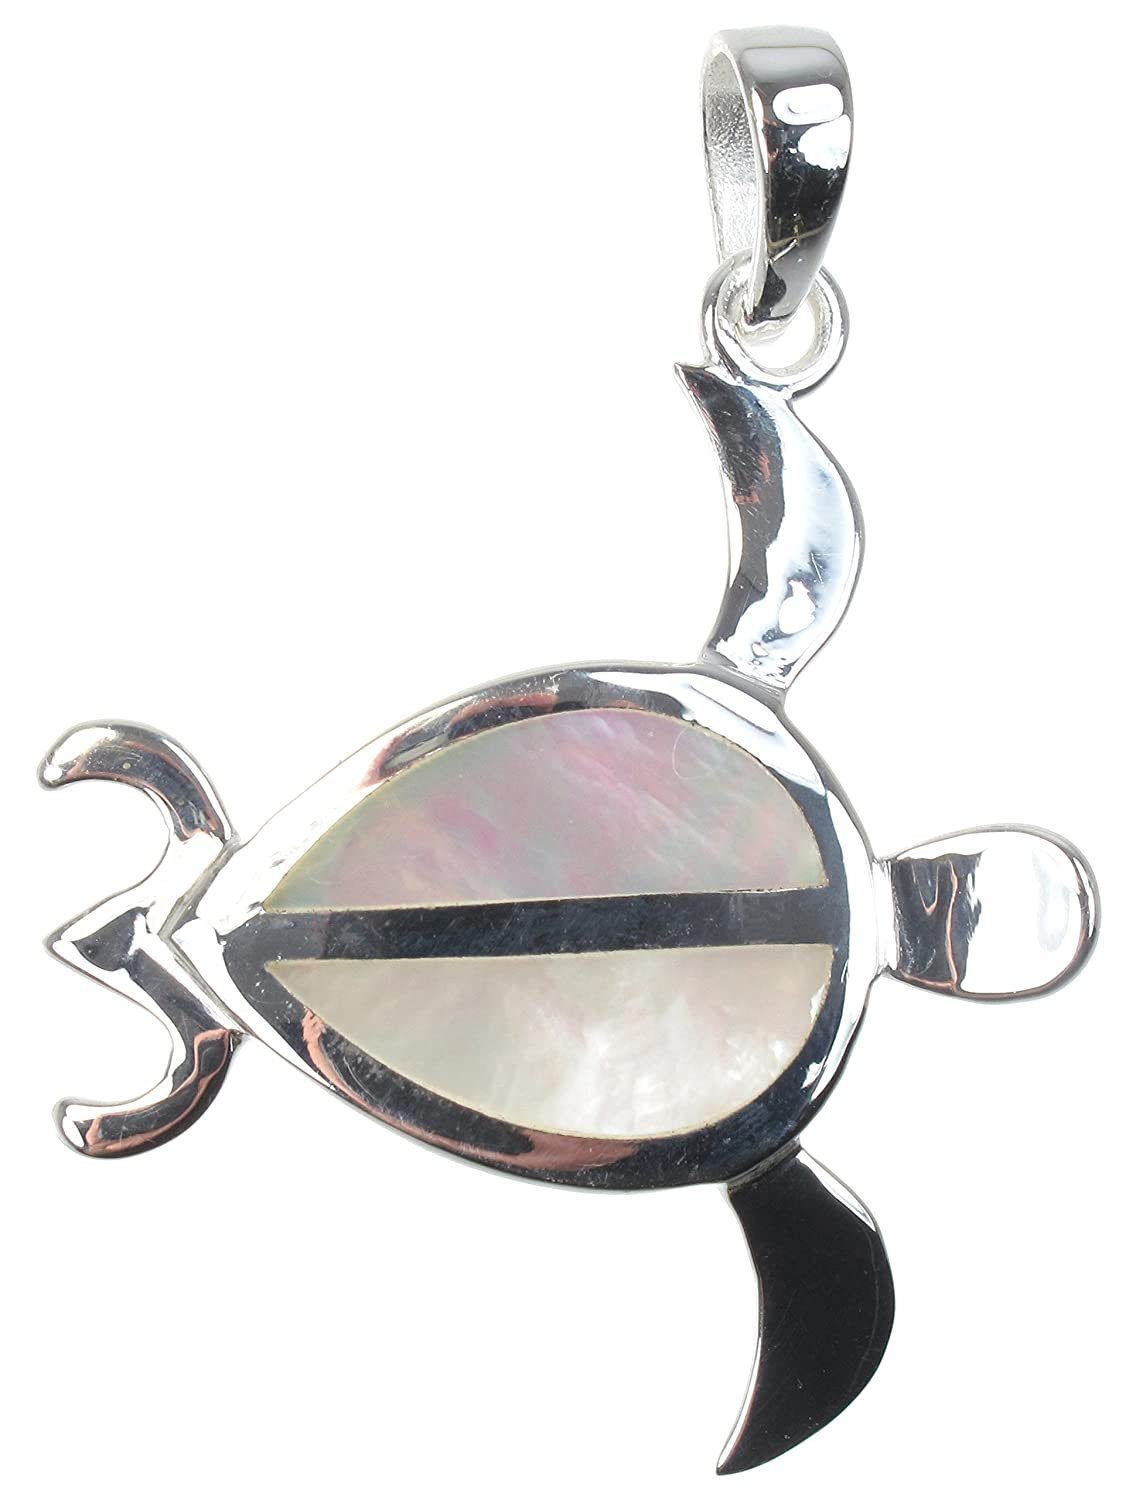 925 Sterling Silver White Mother of Pearl Inlay Sea Turtle Pendant Necklace 16 Long by Marisa DAmico Designs